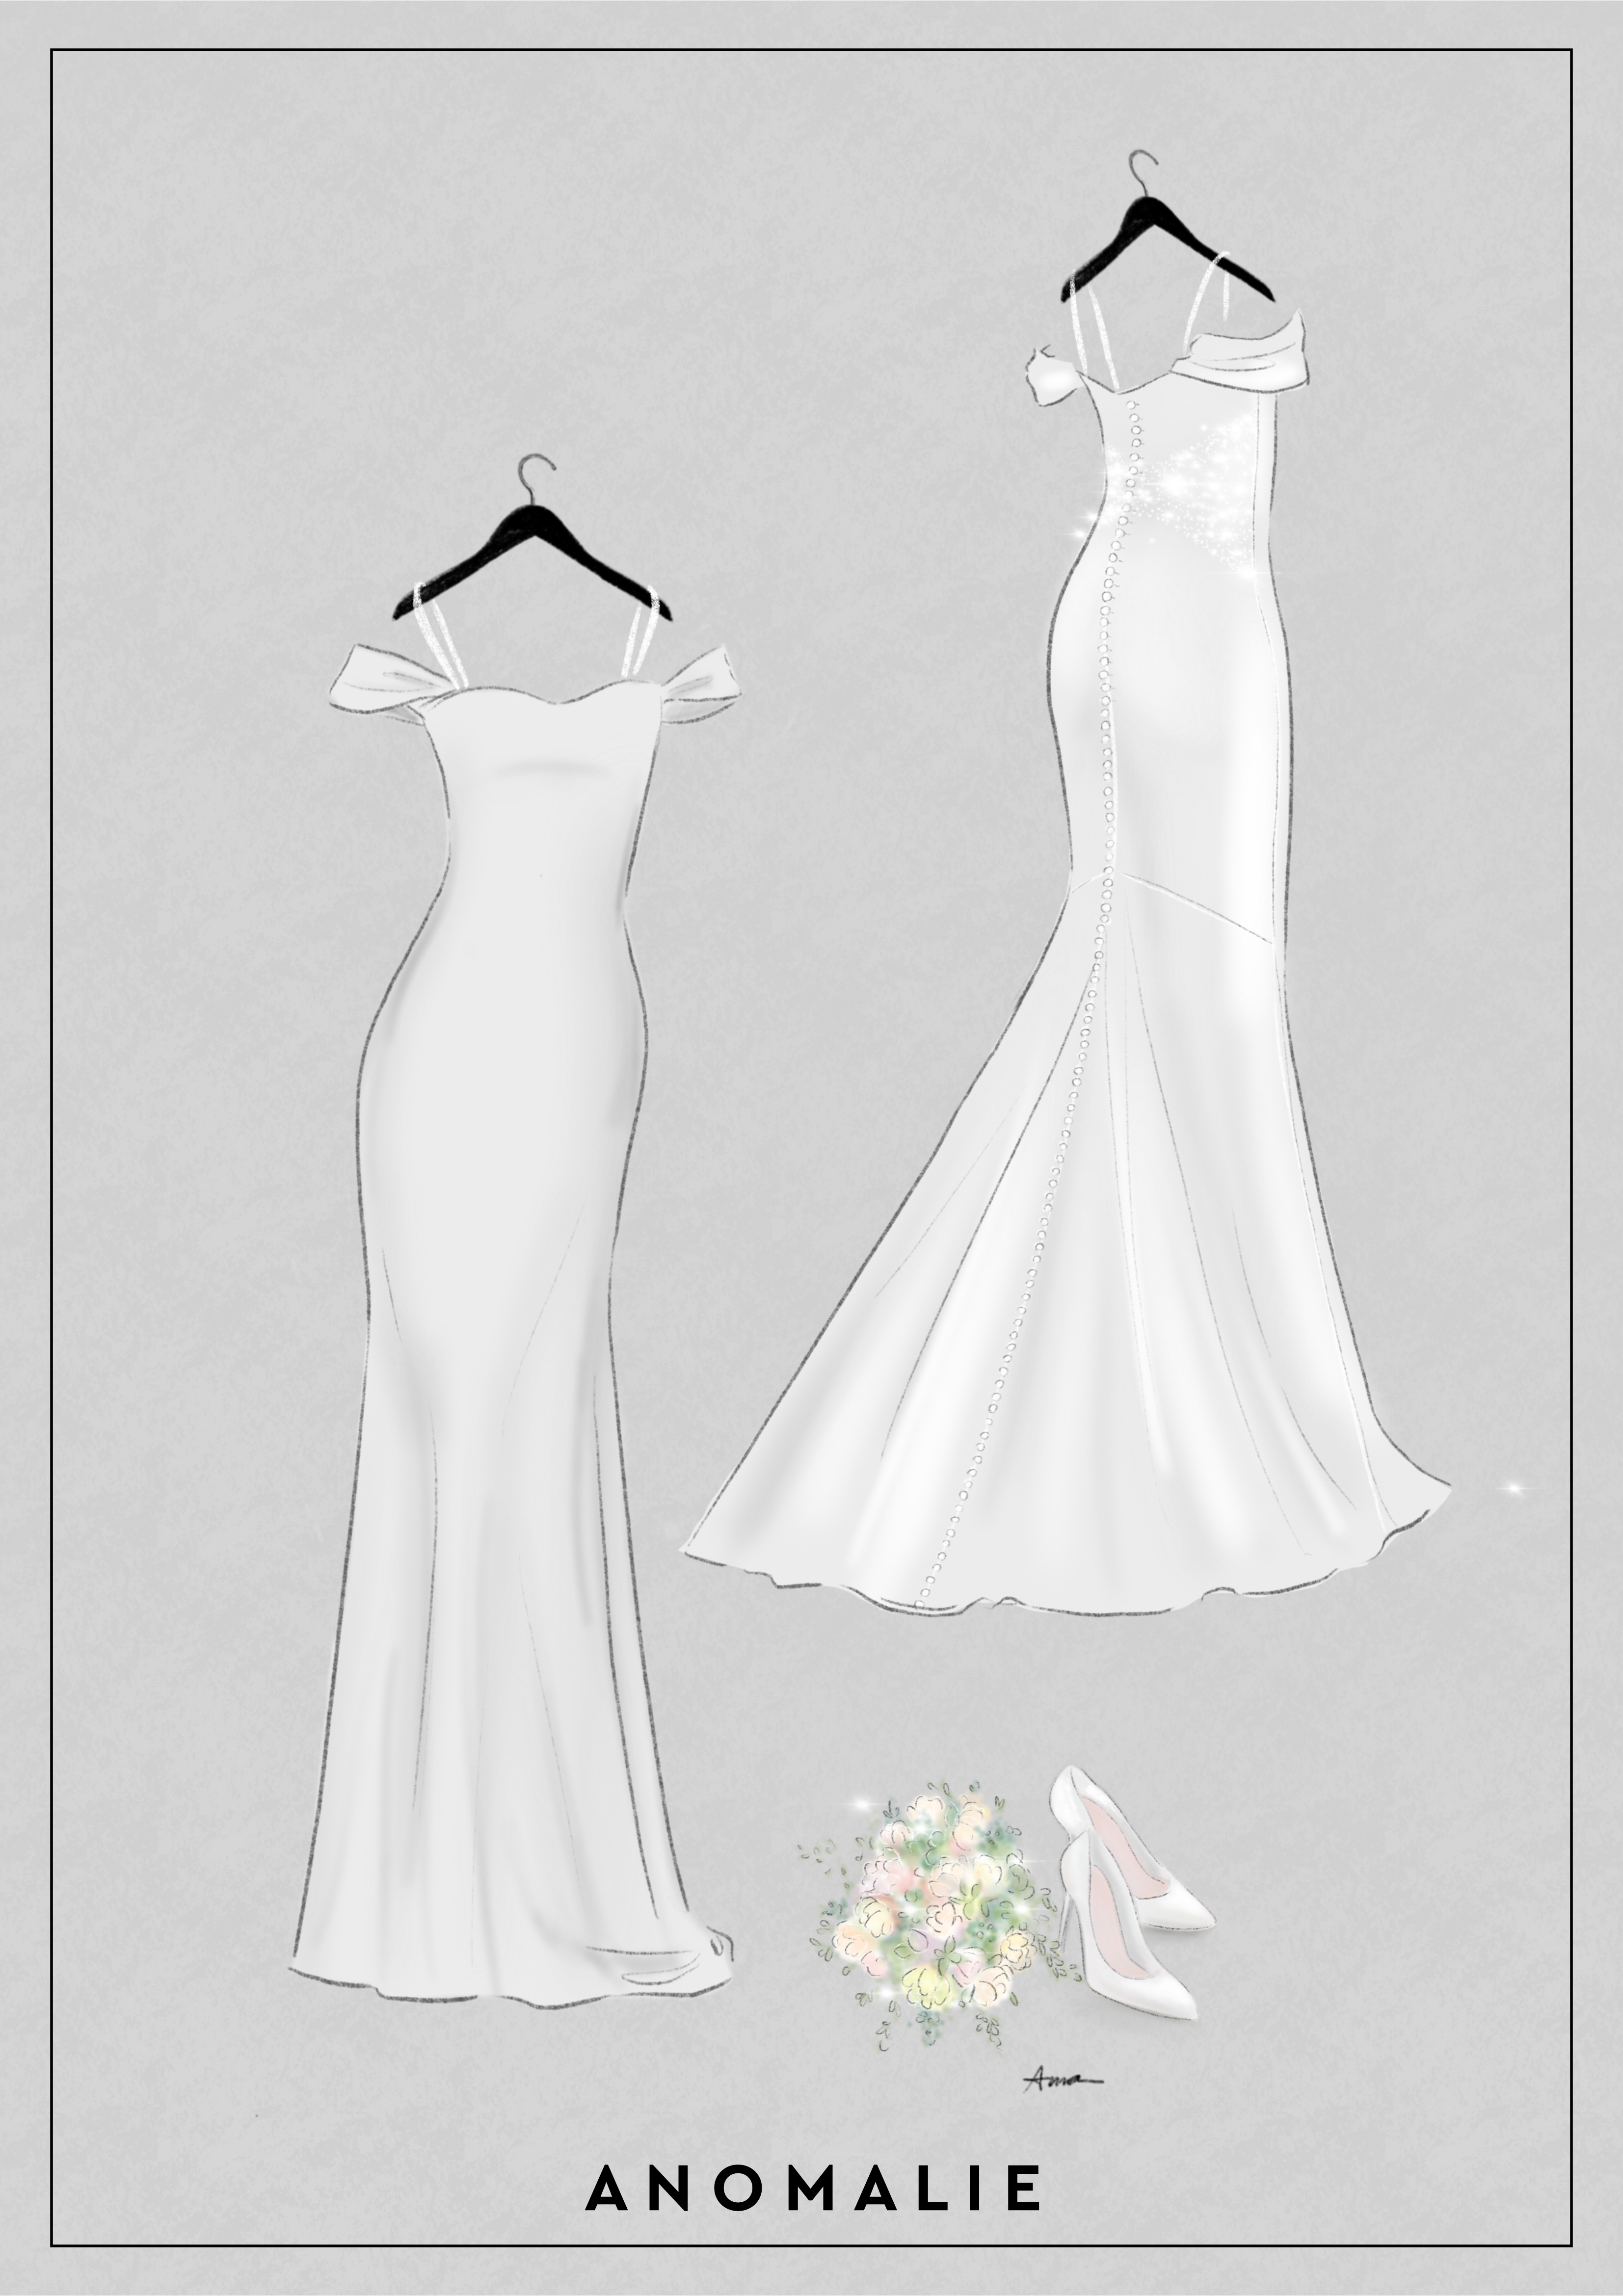 Spaghetti straps help hold up a wedding gown with off-the-shoulder sleeves